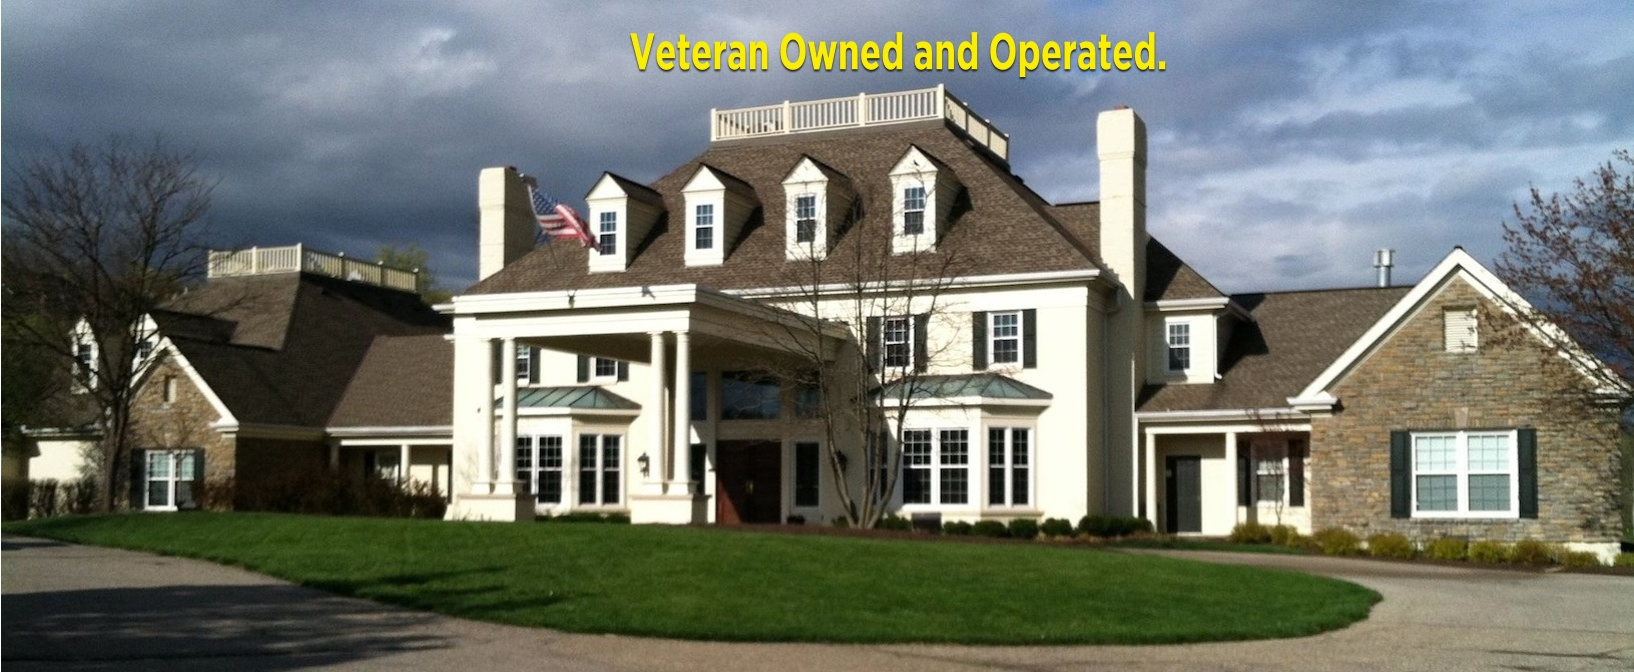 Veteran Owned and Operated.